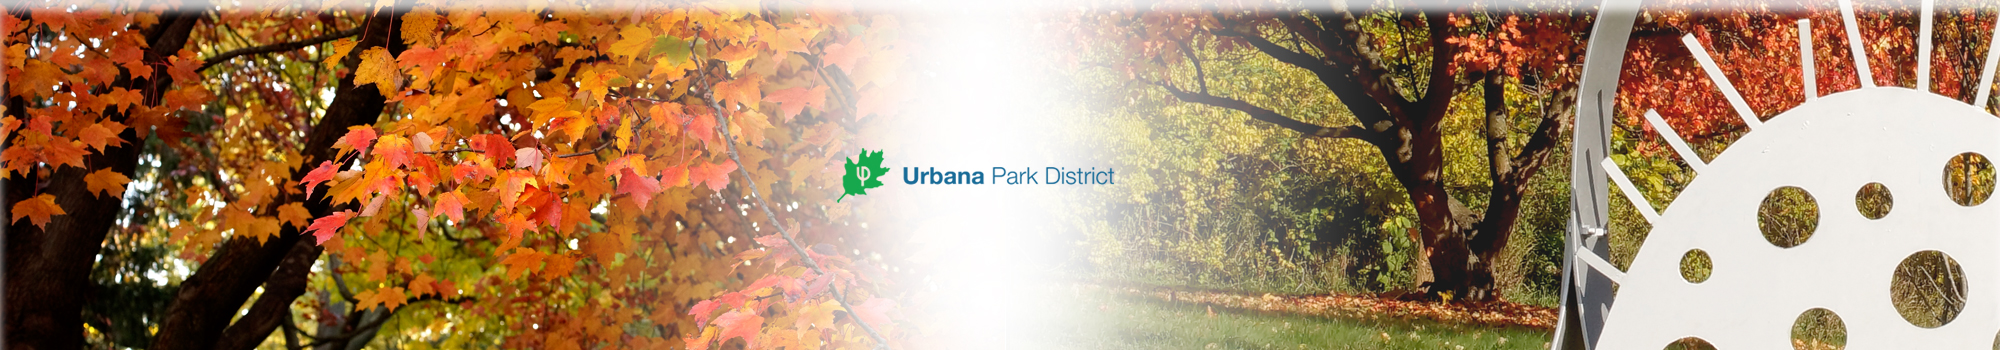 Get Involved | Urbana Park District